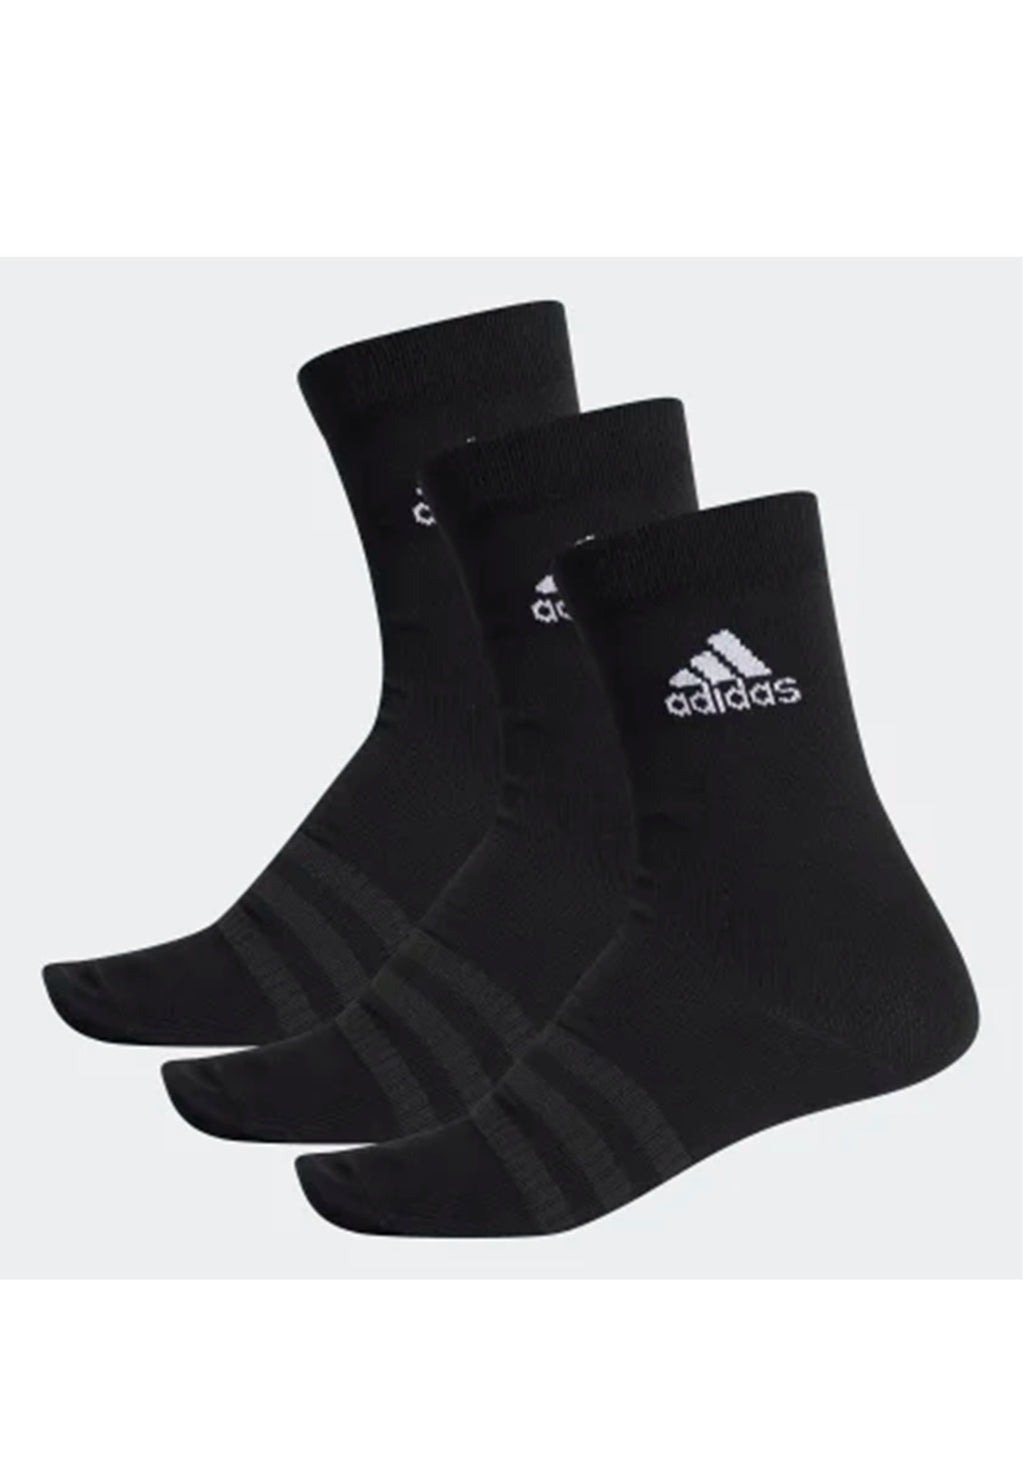 ADIDAS LIGHT CREW BLACK 3 PACK SOCKS <BR> DZ9394